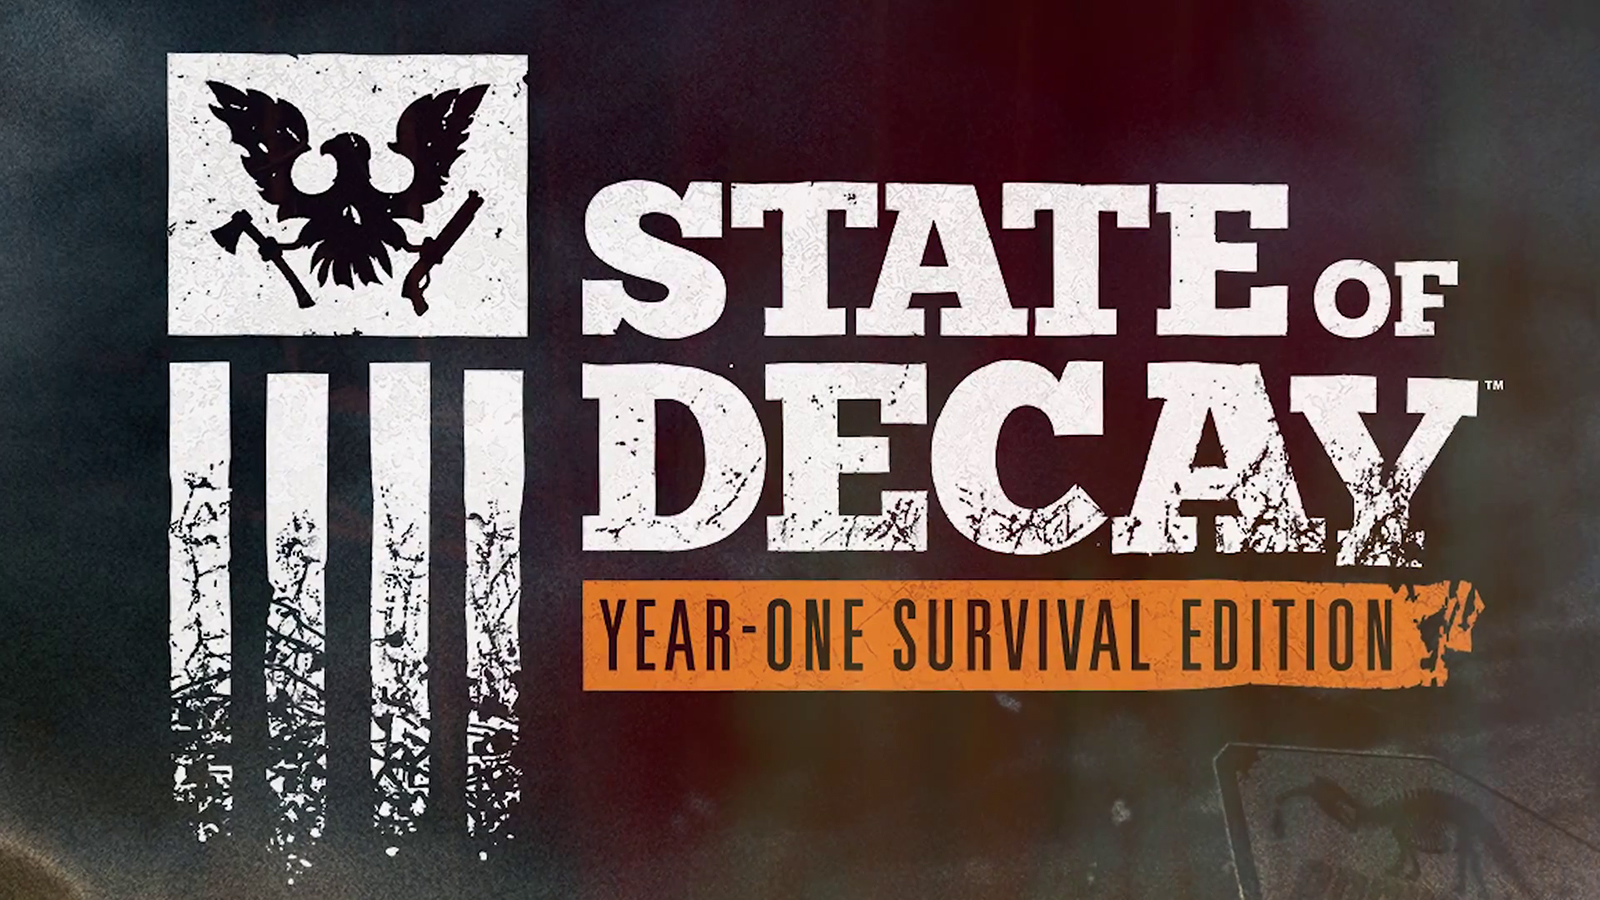 Game Fix Crack State Of Decay Year One Survival